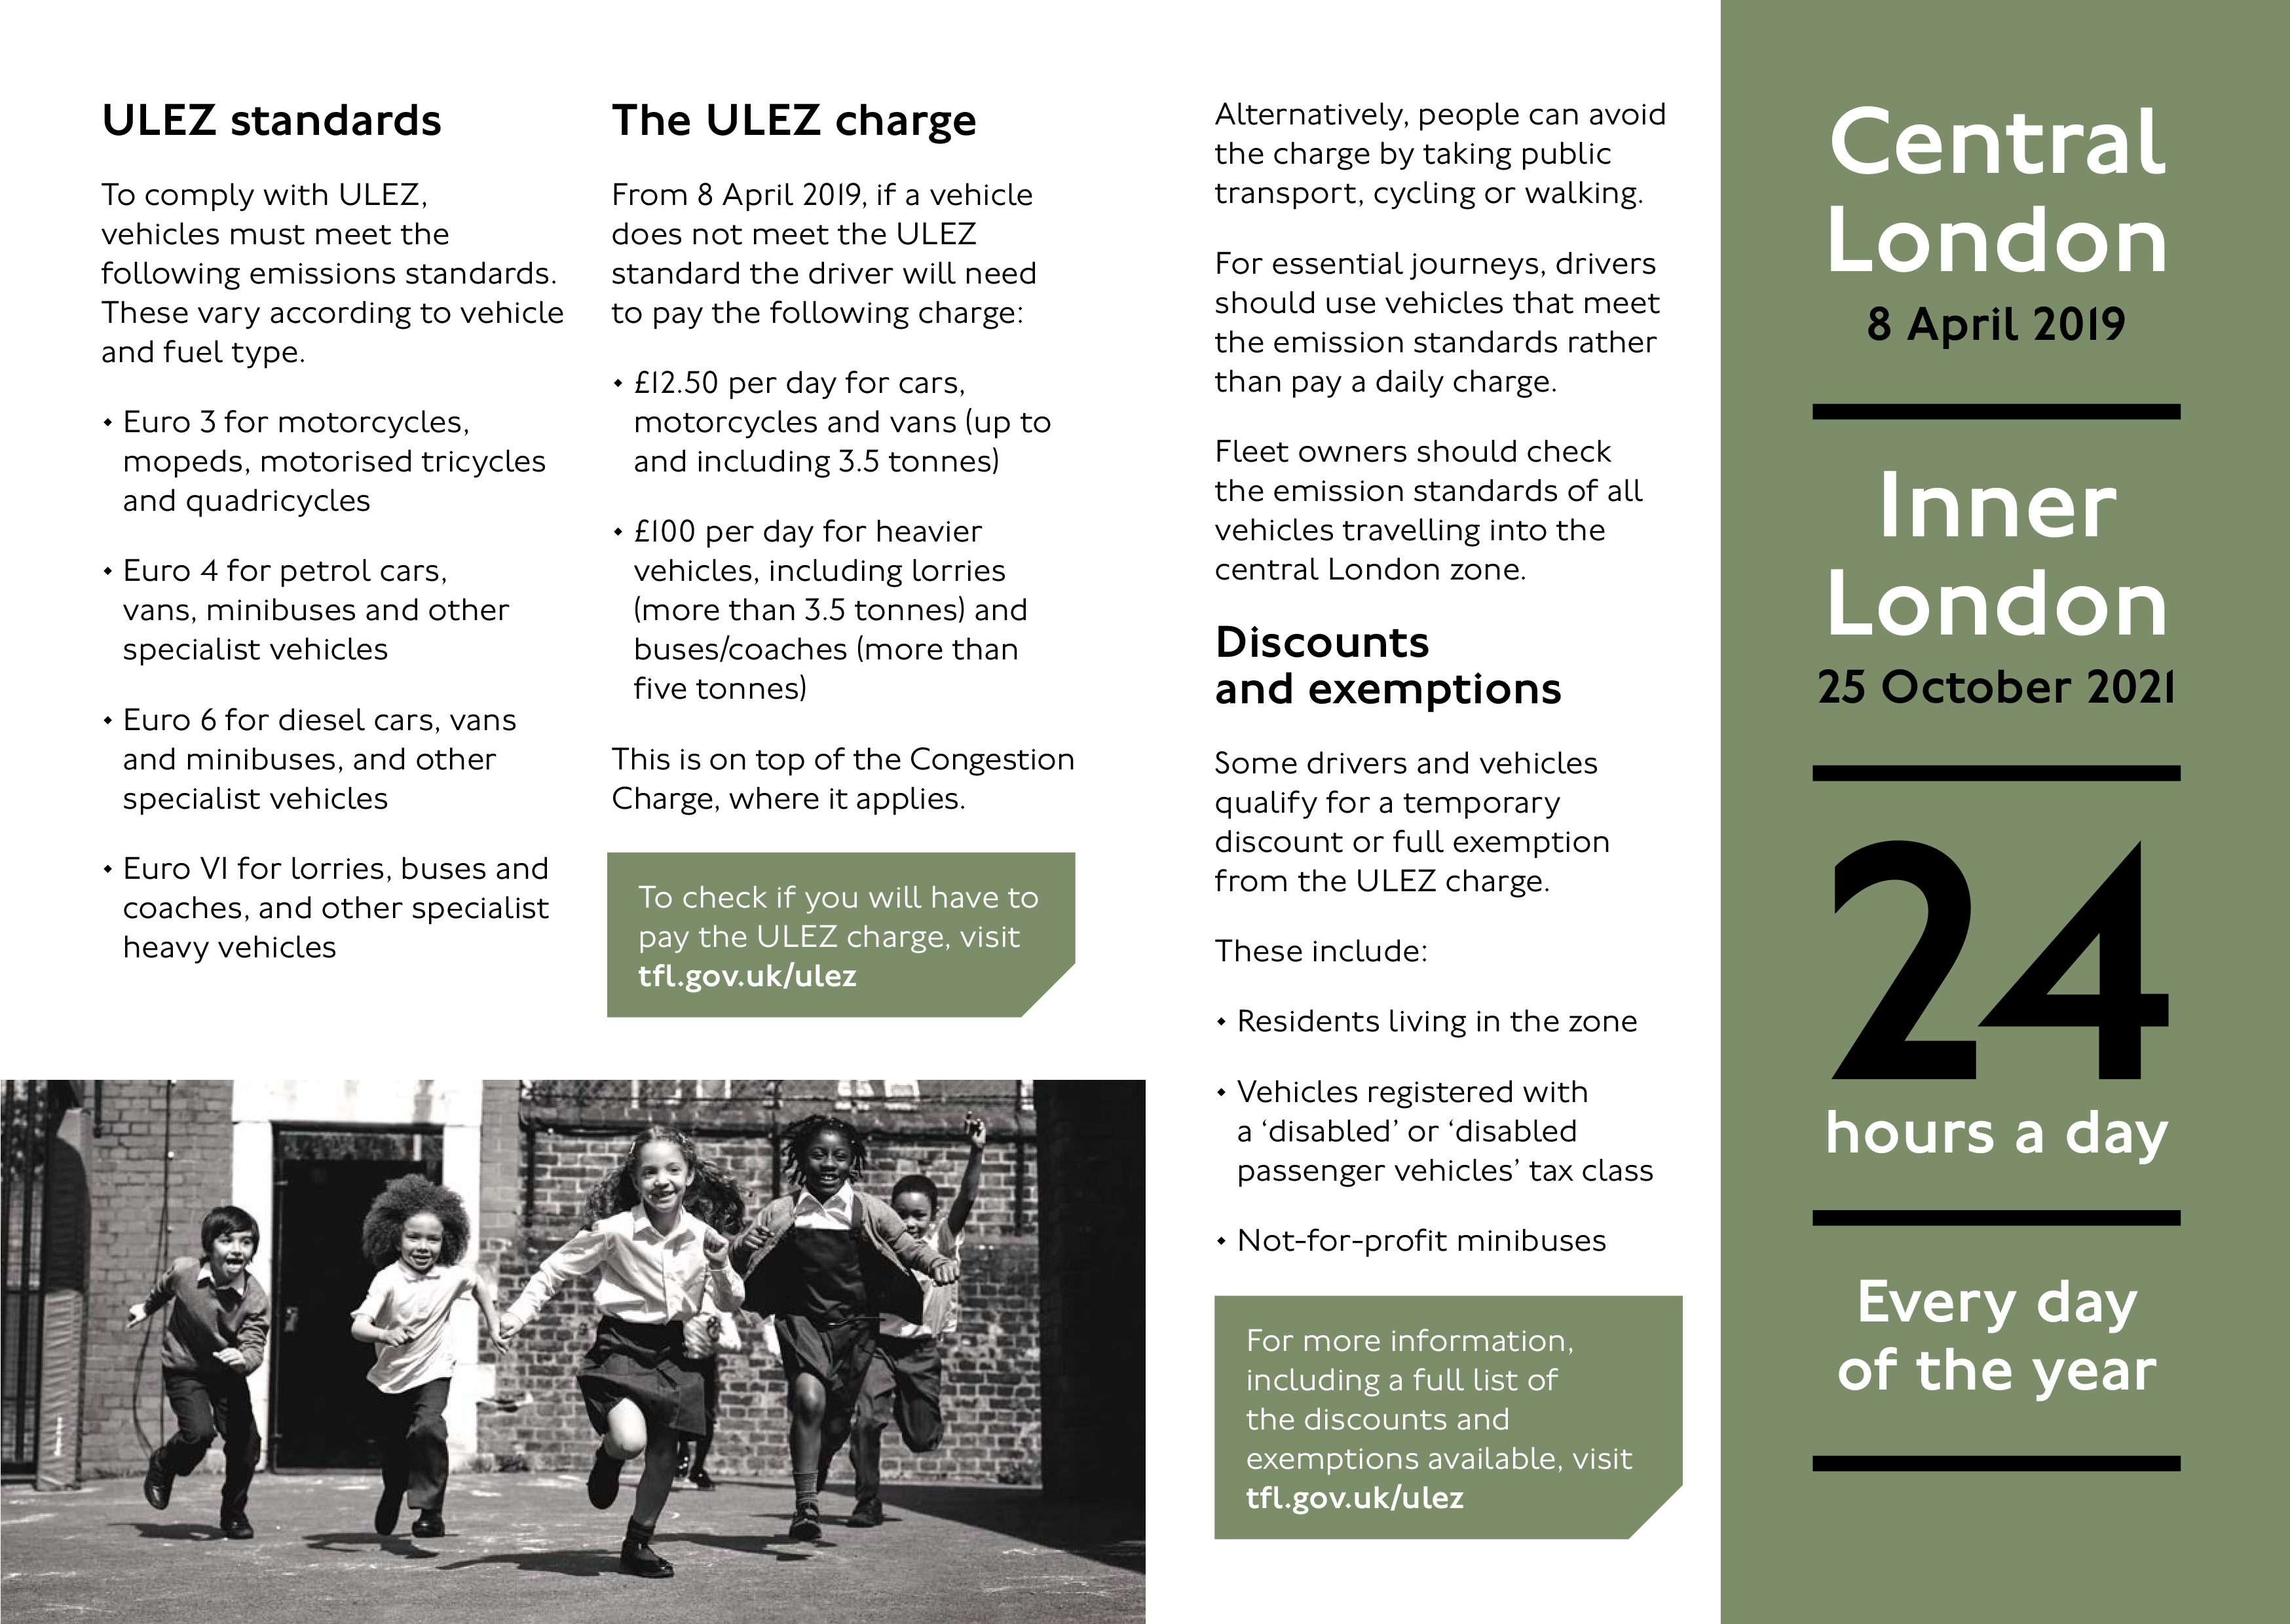 Implement DeliverBEST before 8 April to avoid ULEZ charges